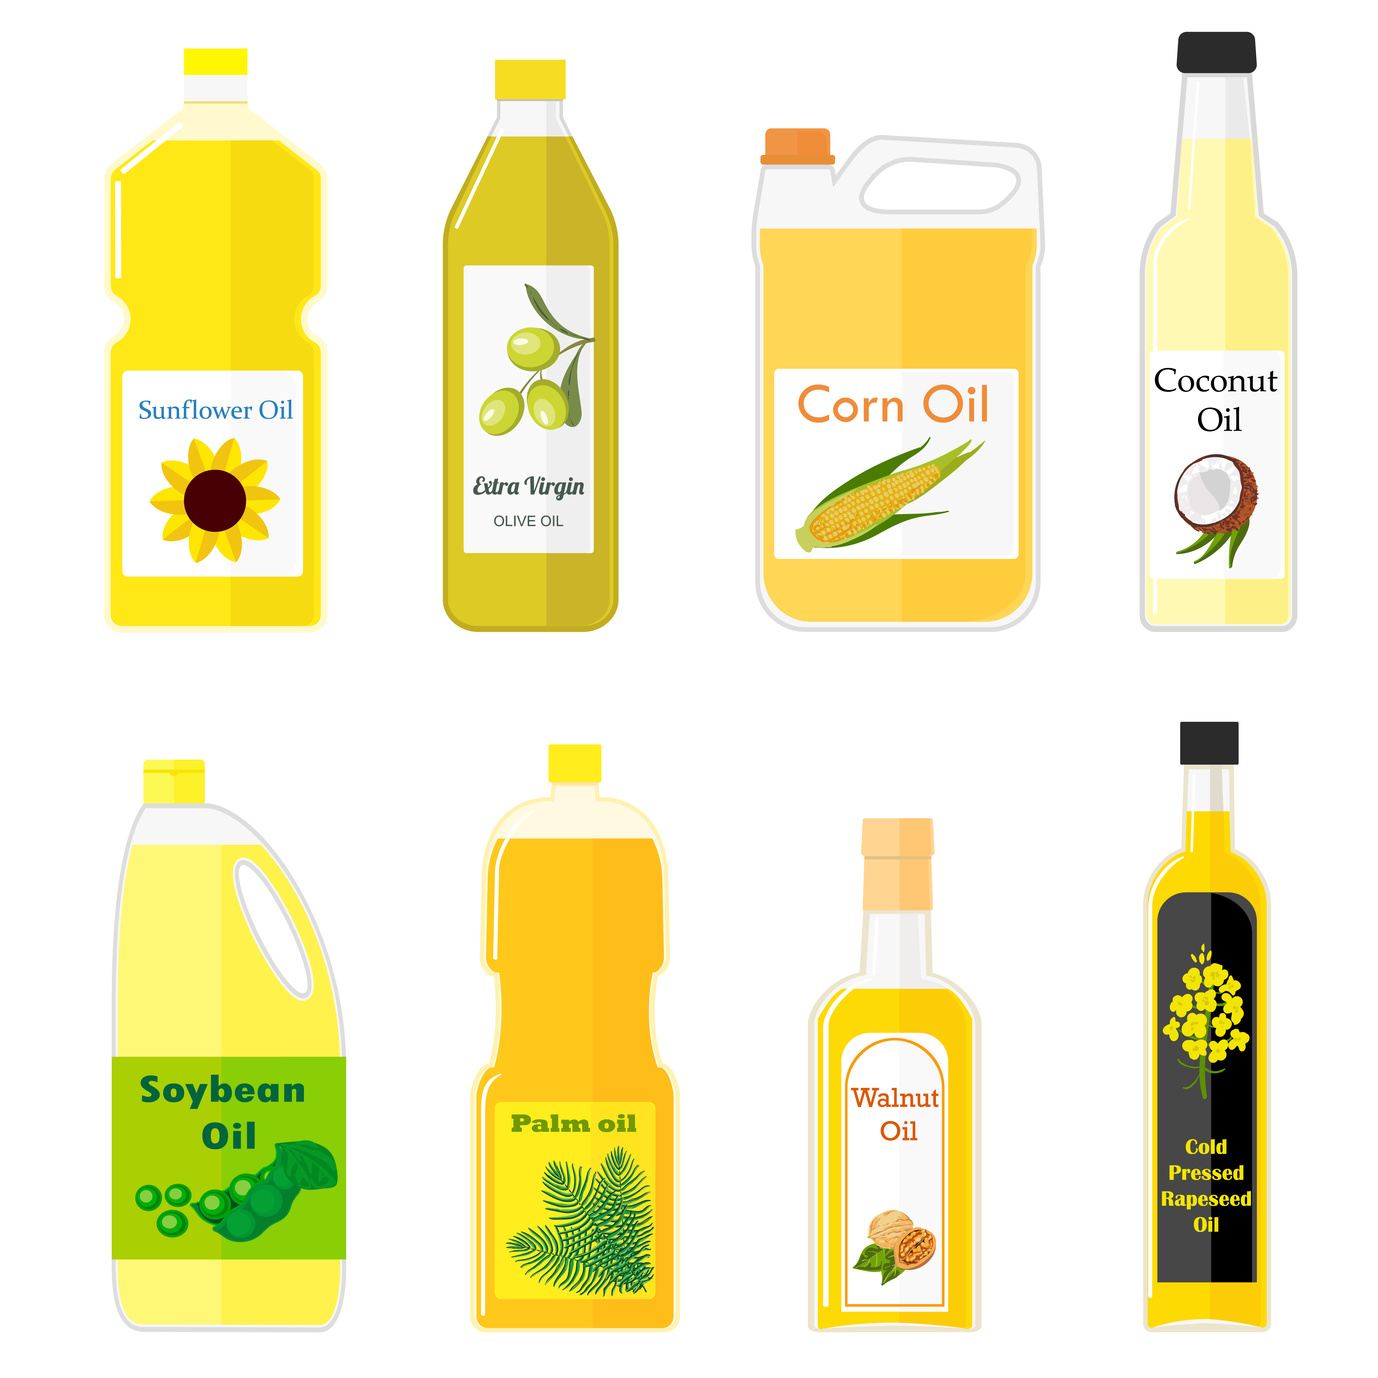 Vector set of pictures of different types of oil for cooking. Colorful illustration in flat style. Group bottles of oil for frying